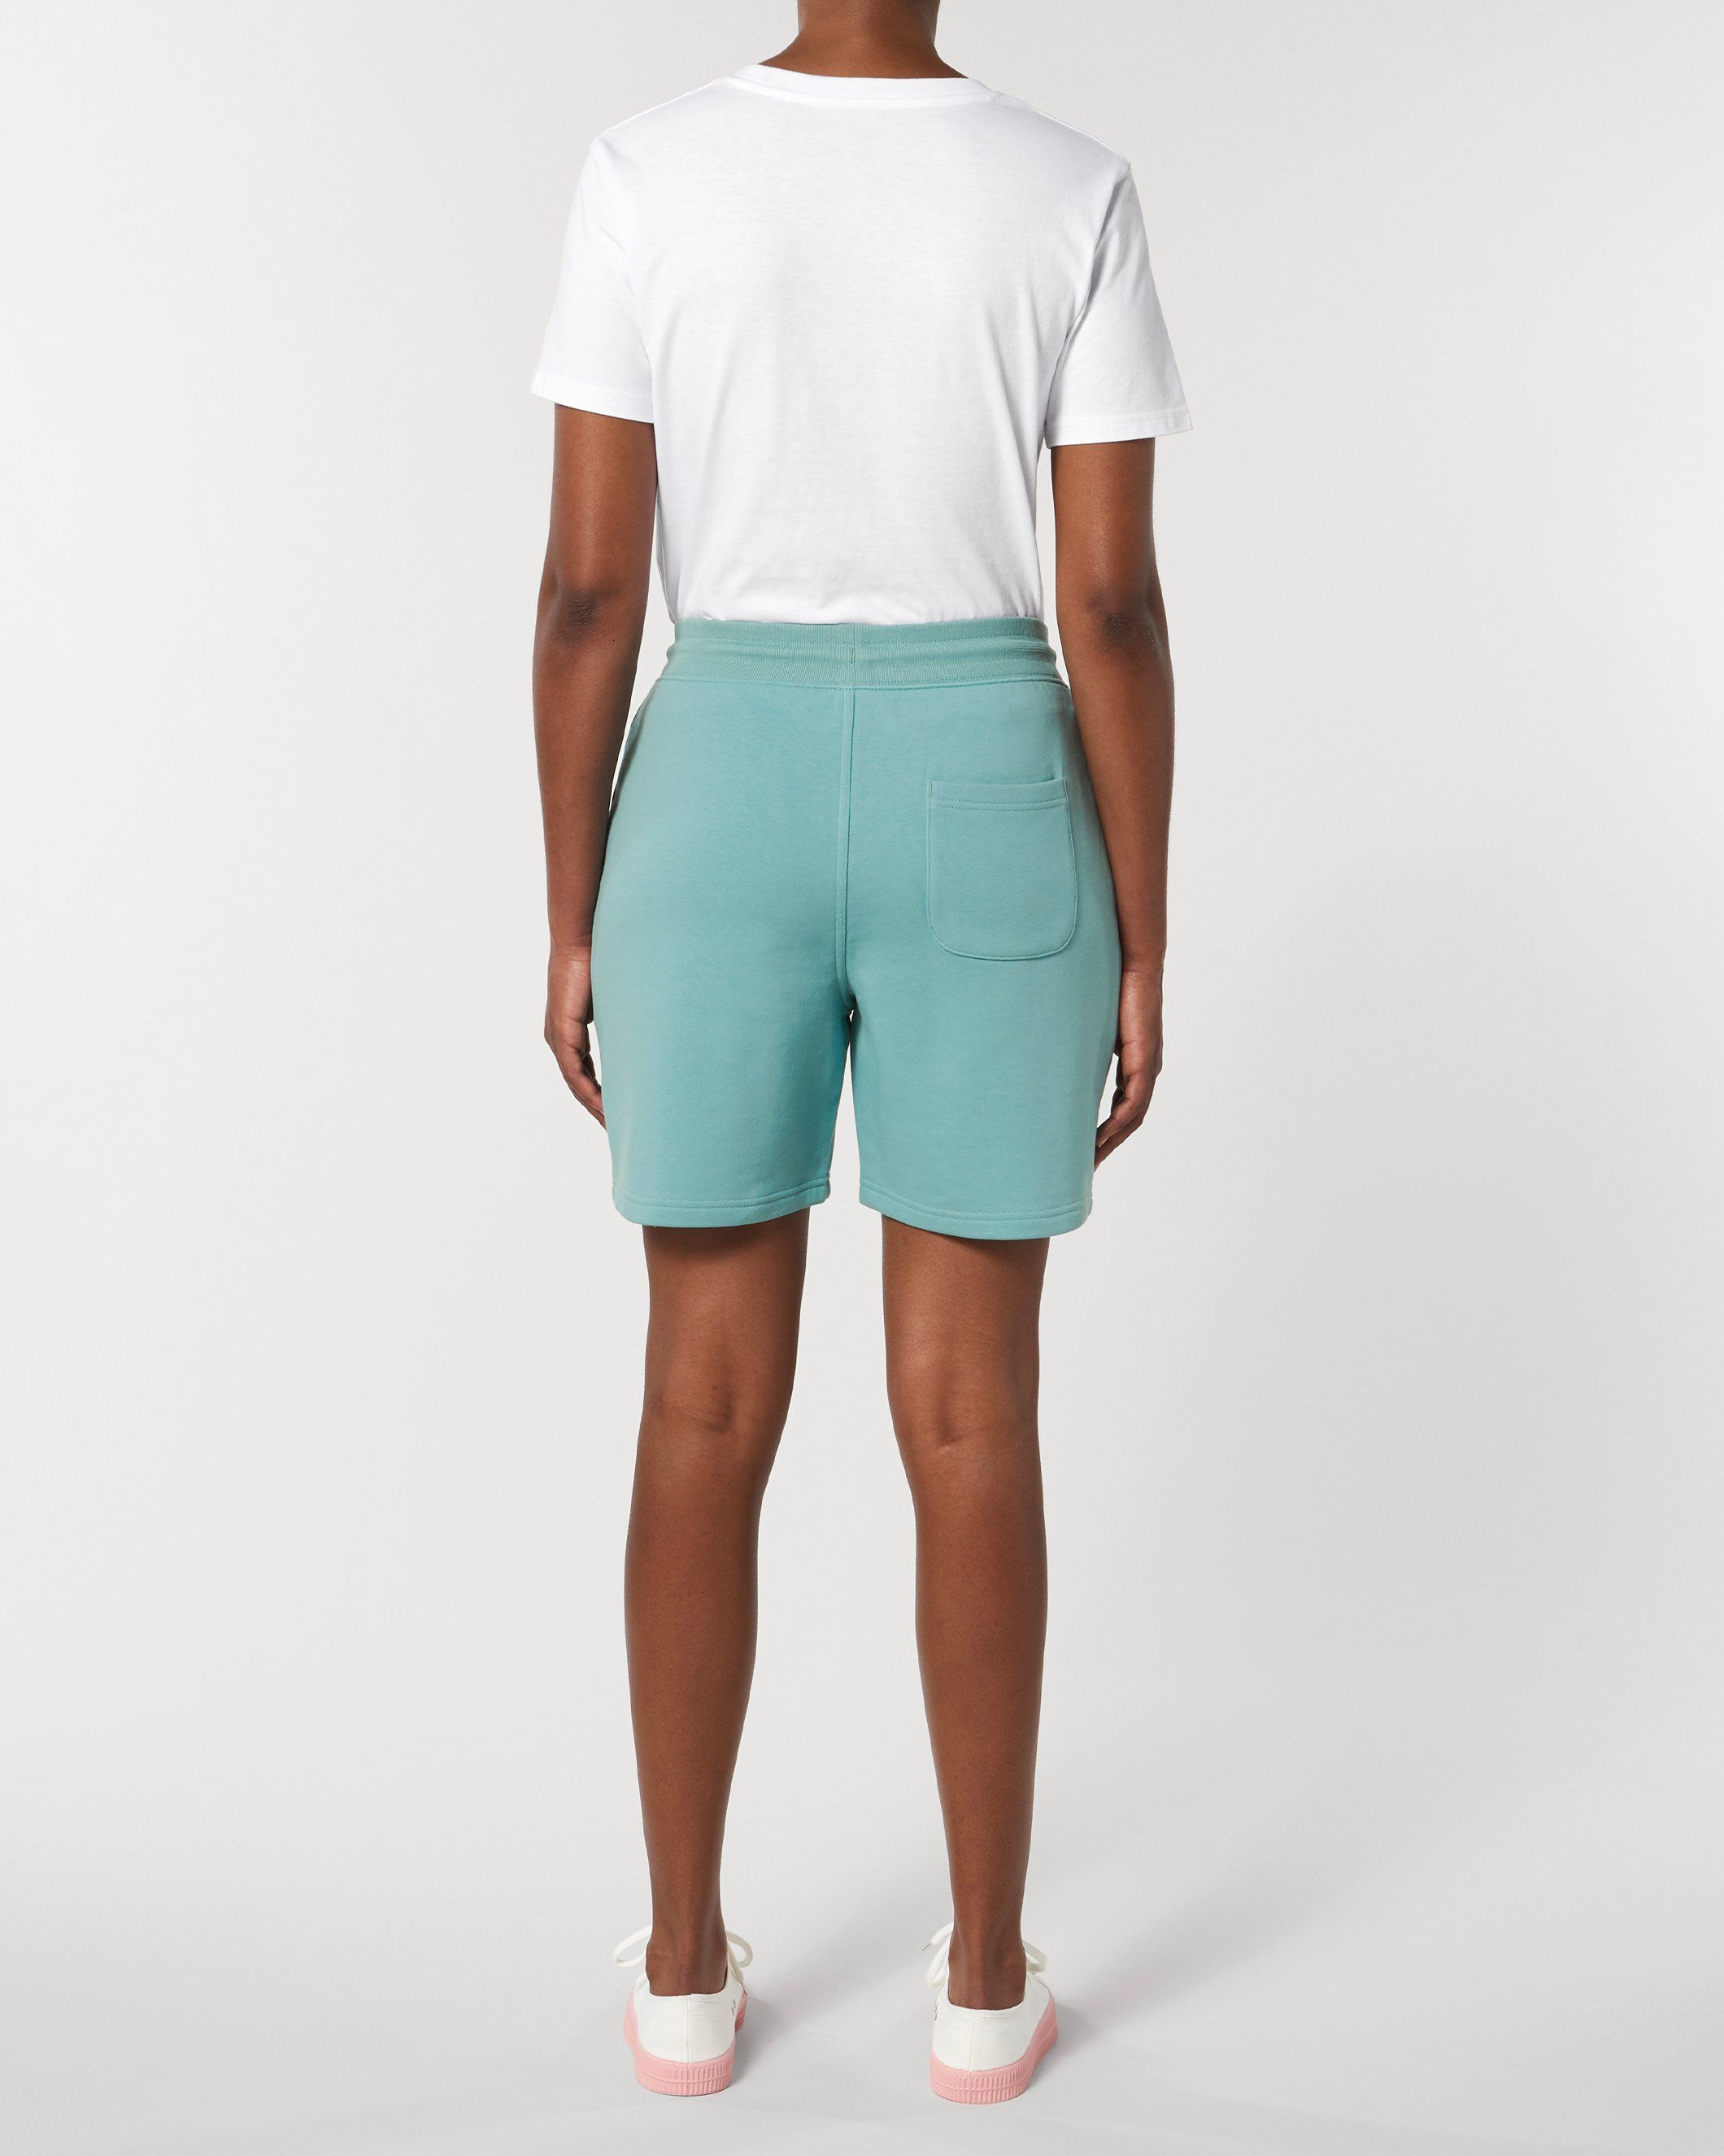 Vayu Unisex Jogger Shorts in Teal